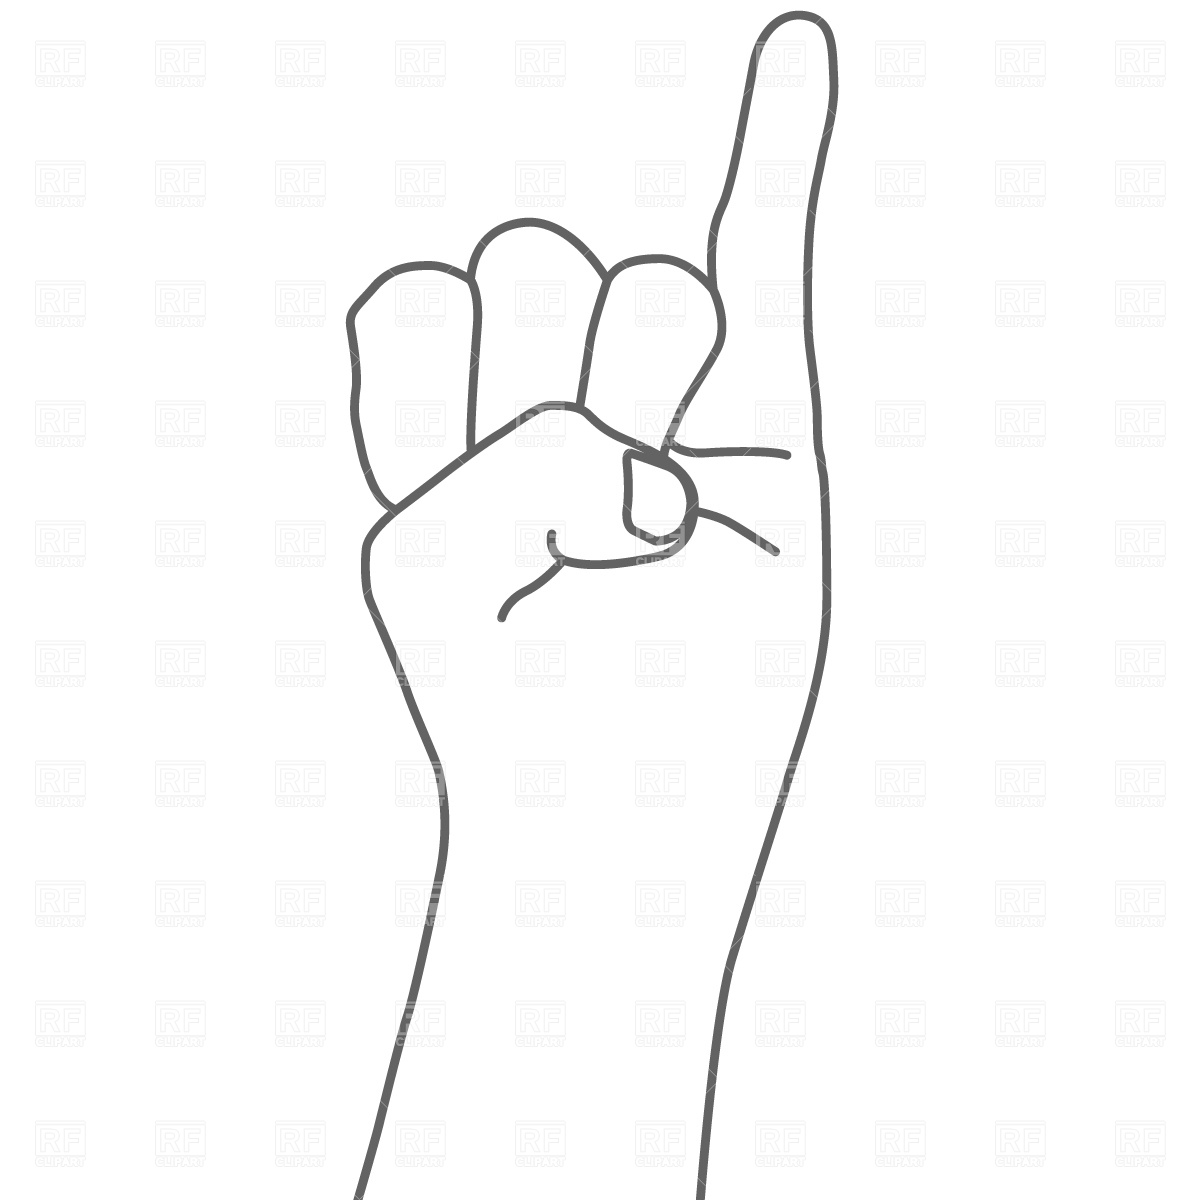 Pointer finger and pinky finger clipart images jpg free library Pointer finger and pinky finger clipart images - ClipartFest jpg free library